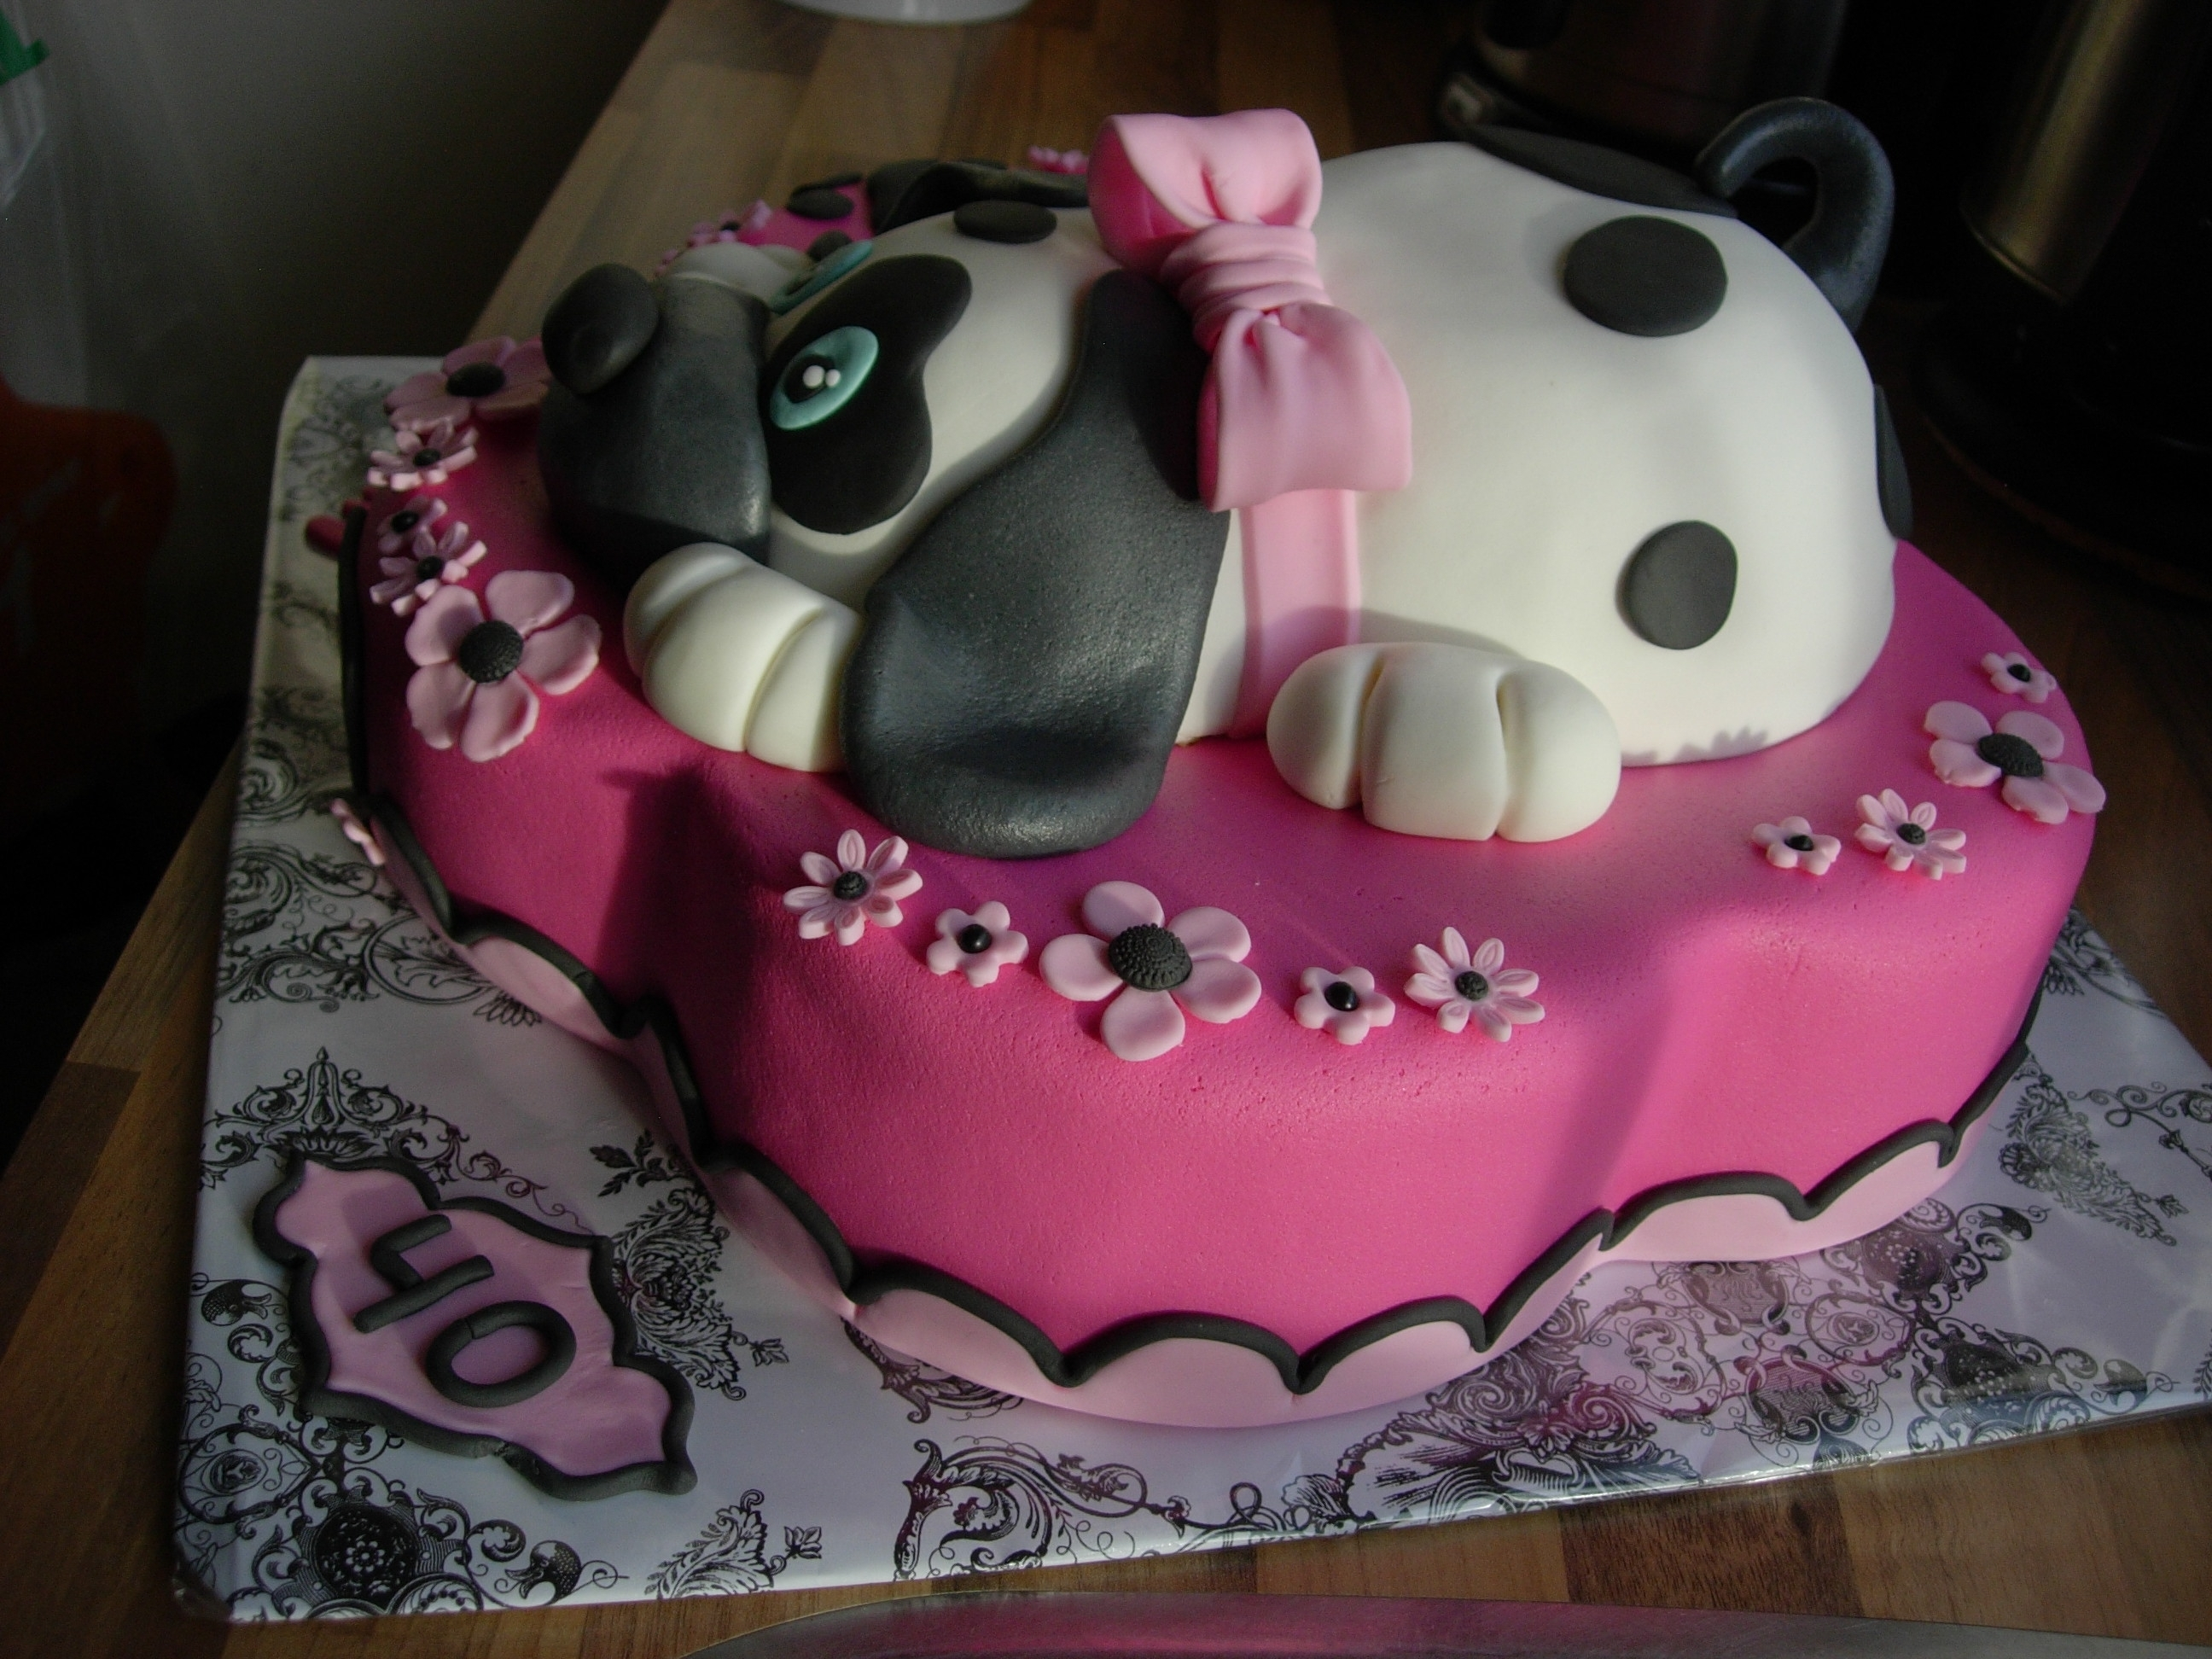 Flower Amp Dog Birthday Cake For My Daughter 7 And Husband 40